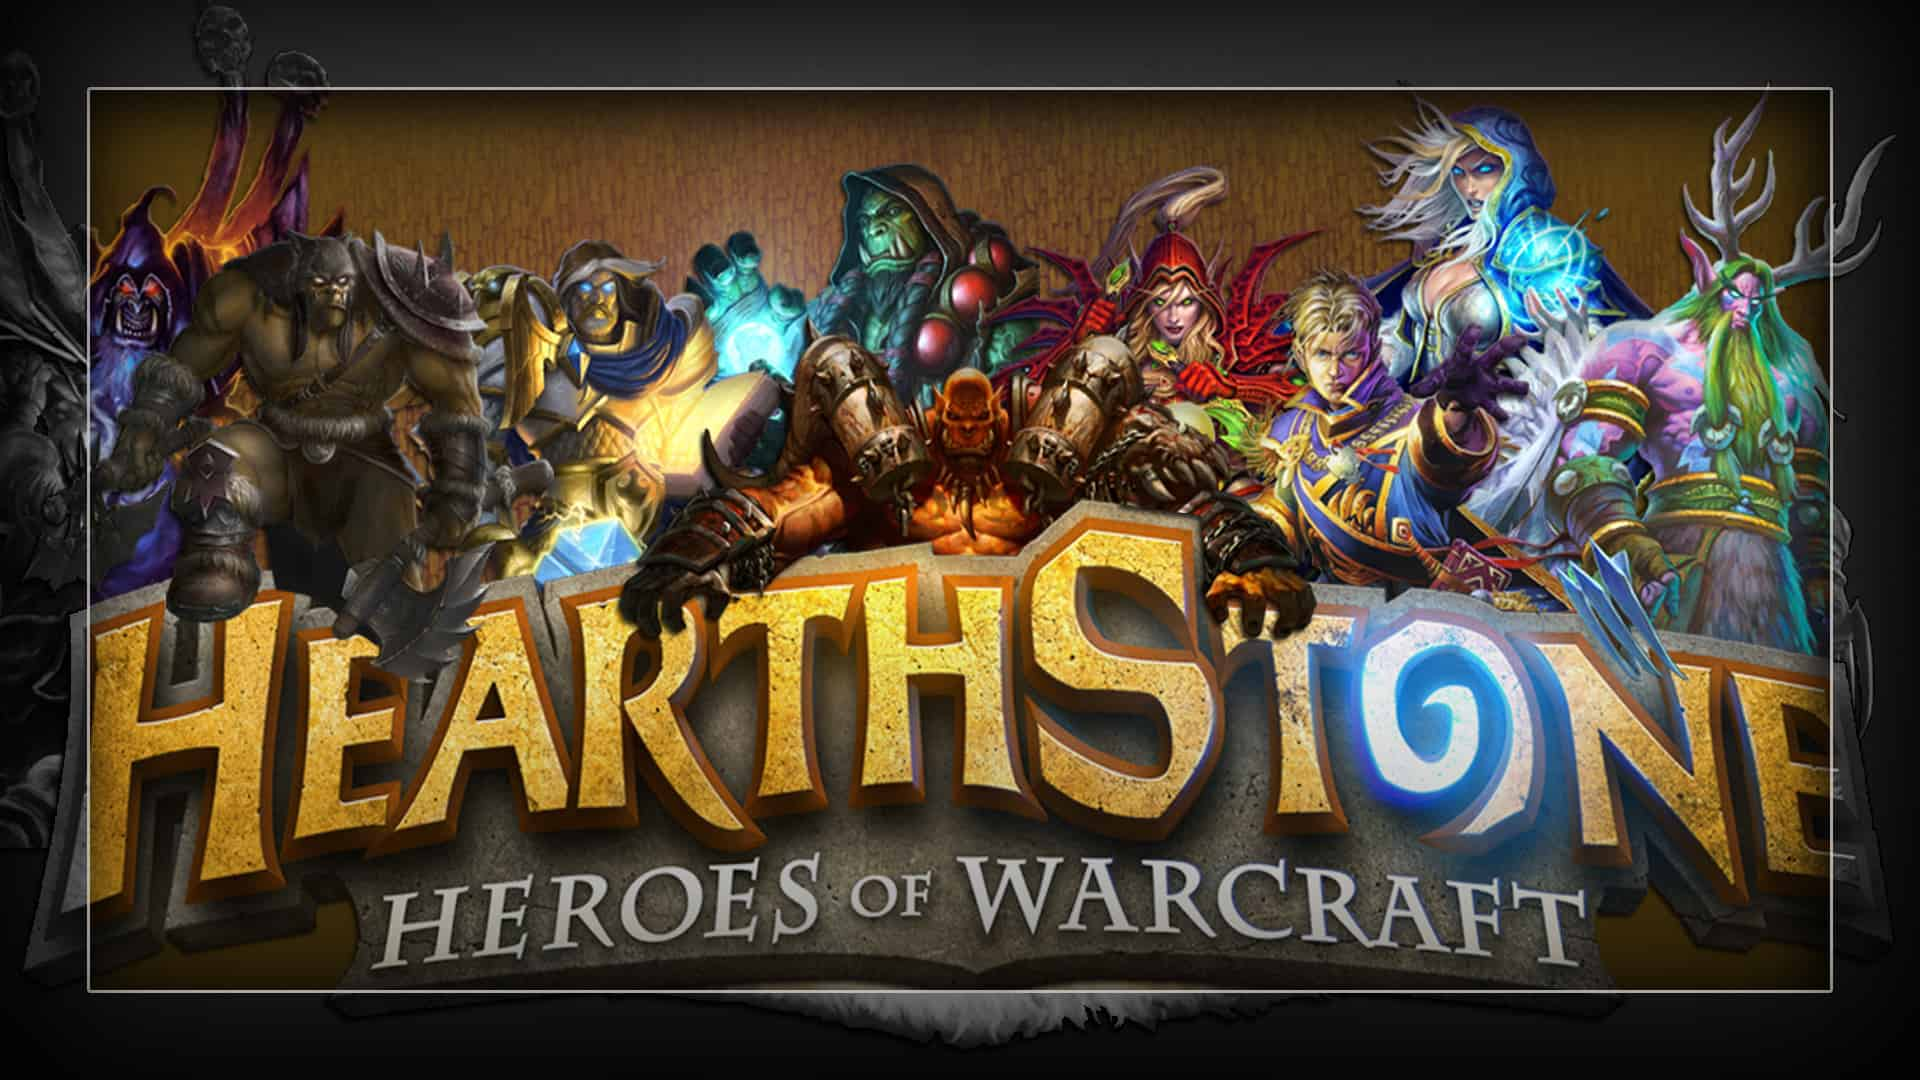 How To Play Hearthstone On An Android Phone